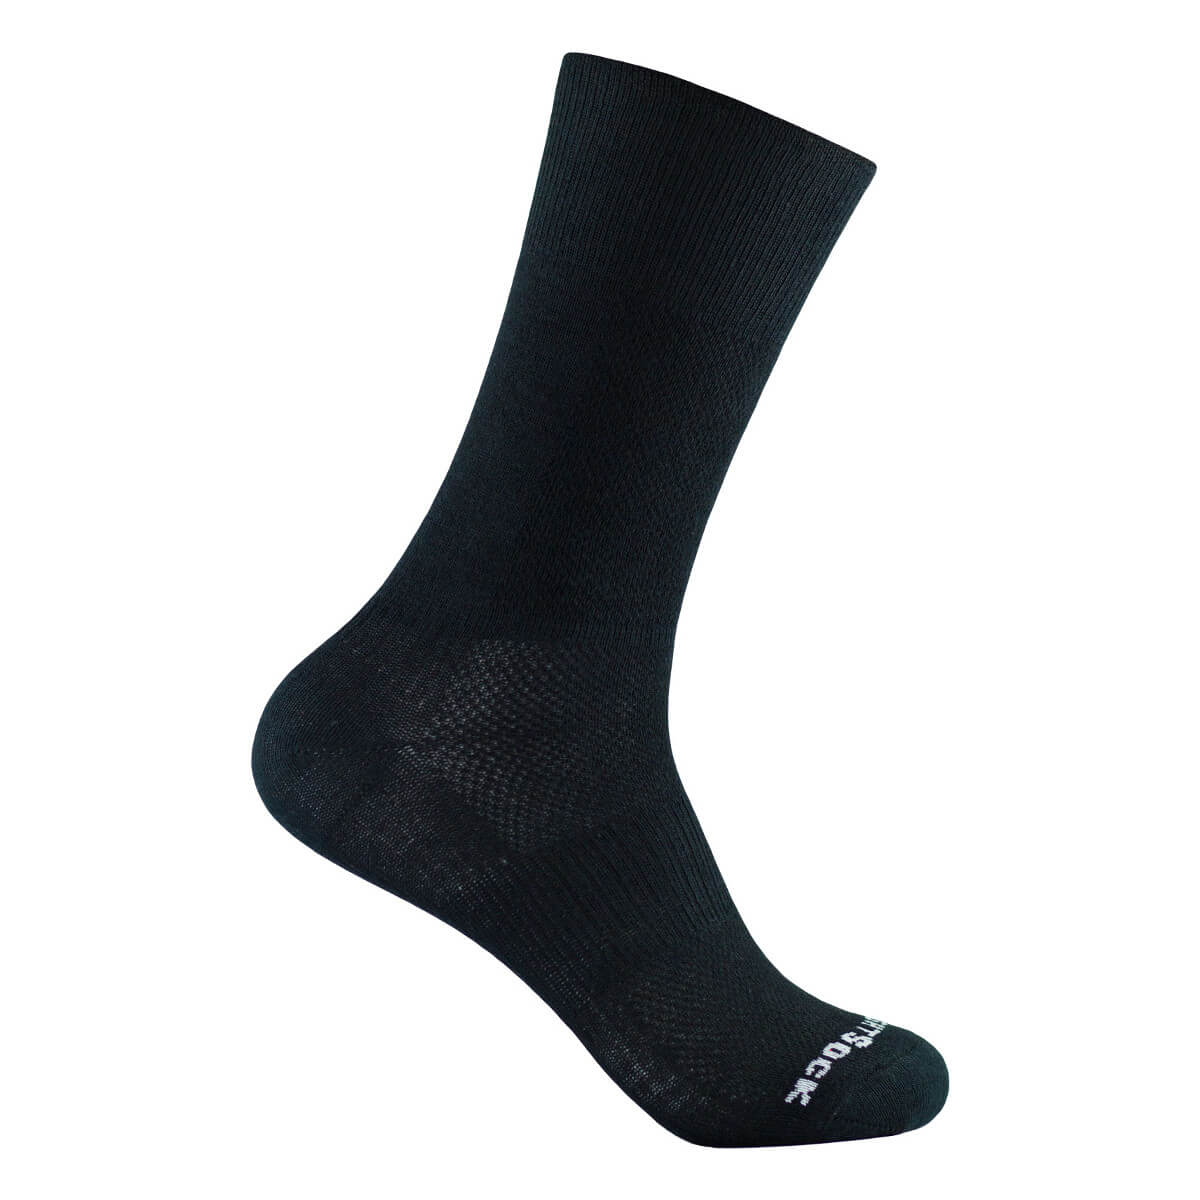 wrightsock coolmesh 2 crew black